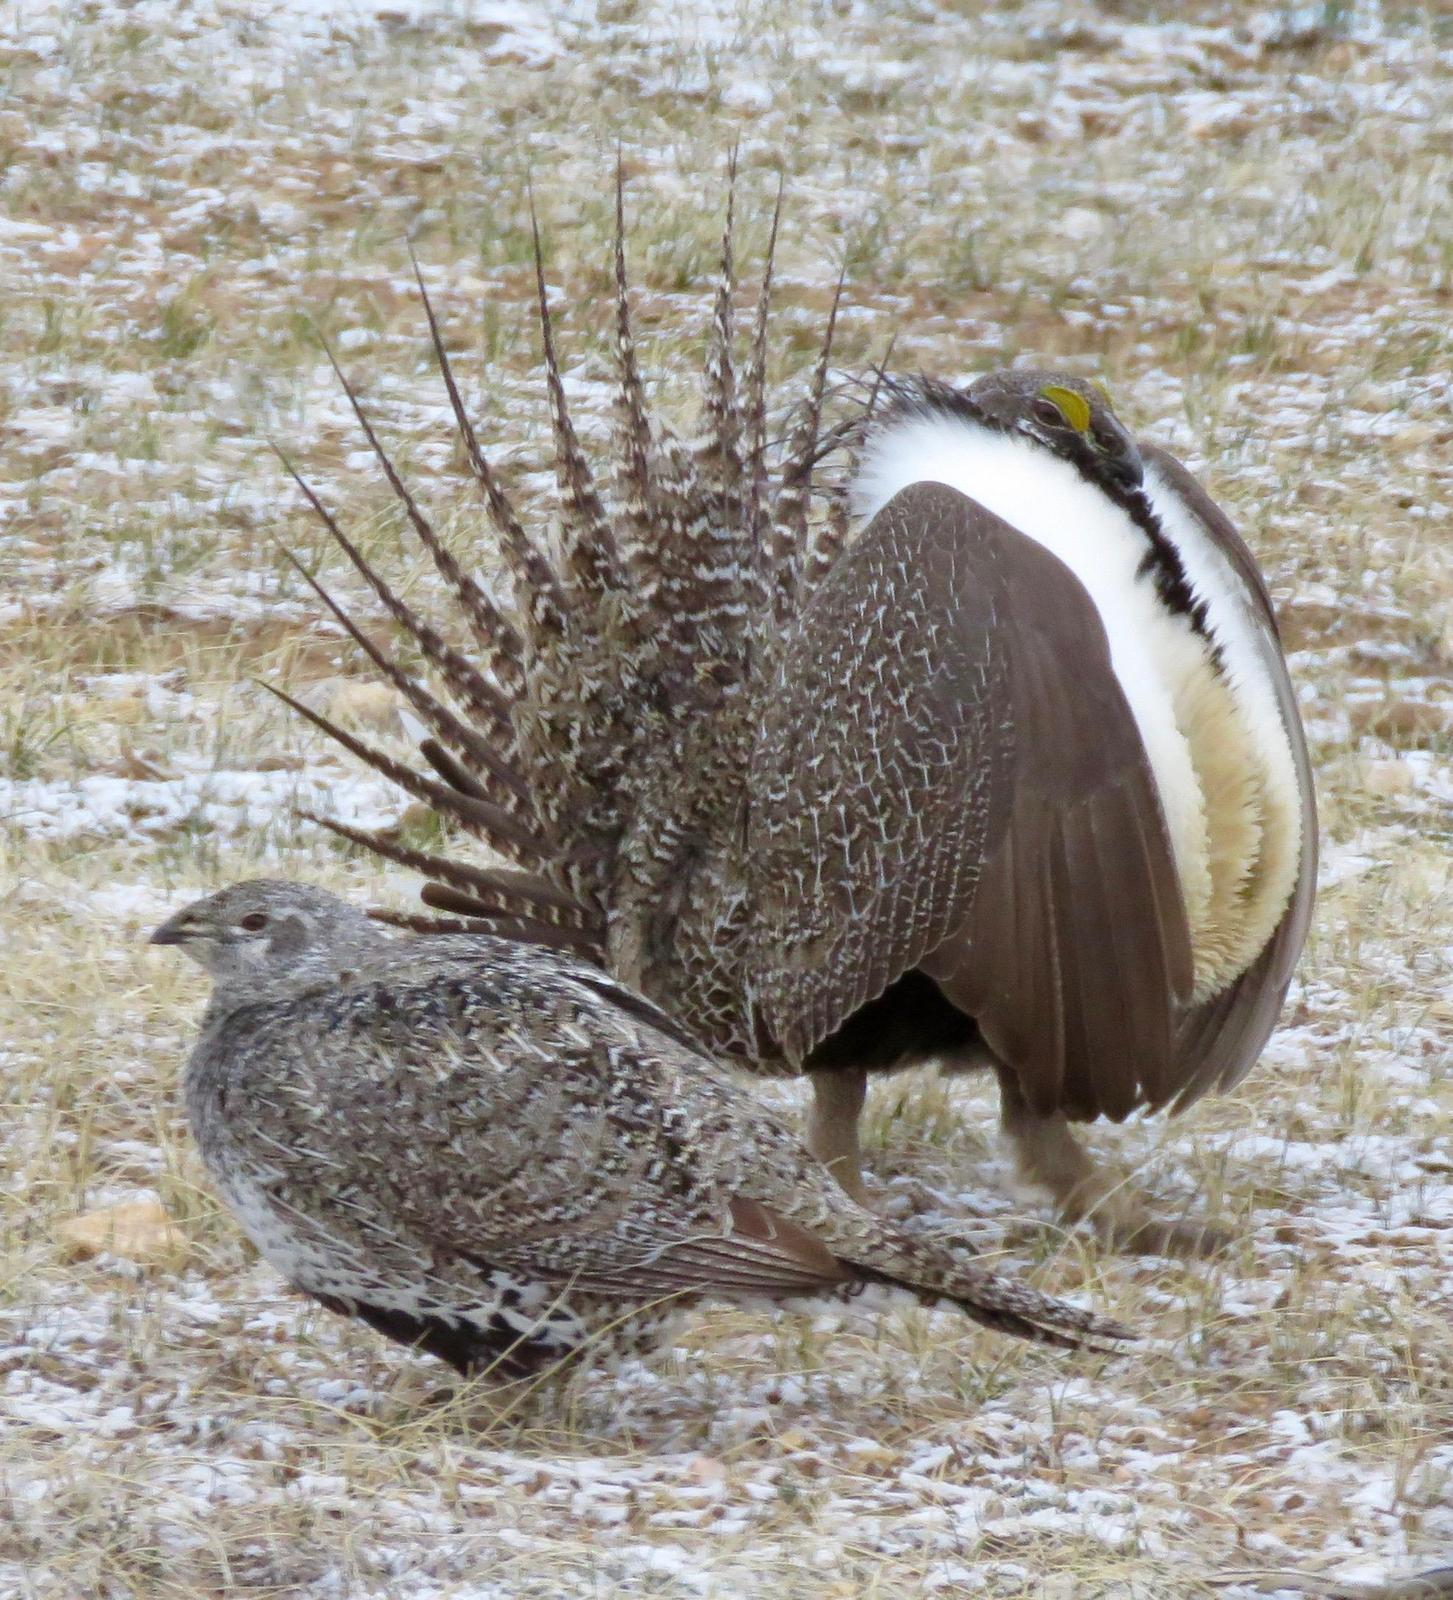 Greater Sage-Grouse Photo by Don Glasco